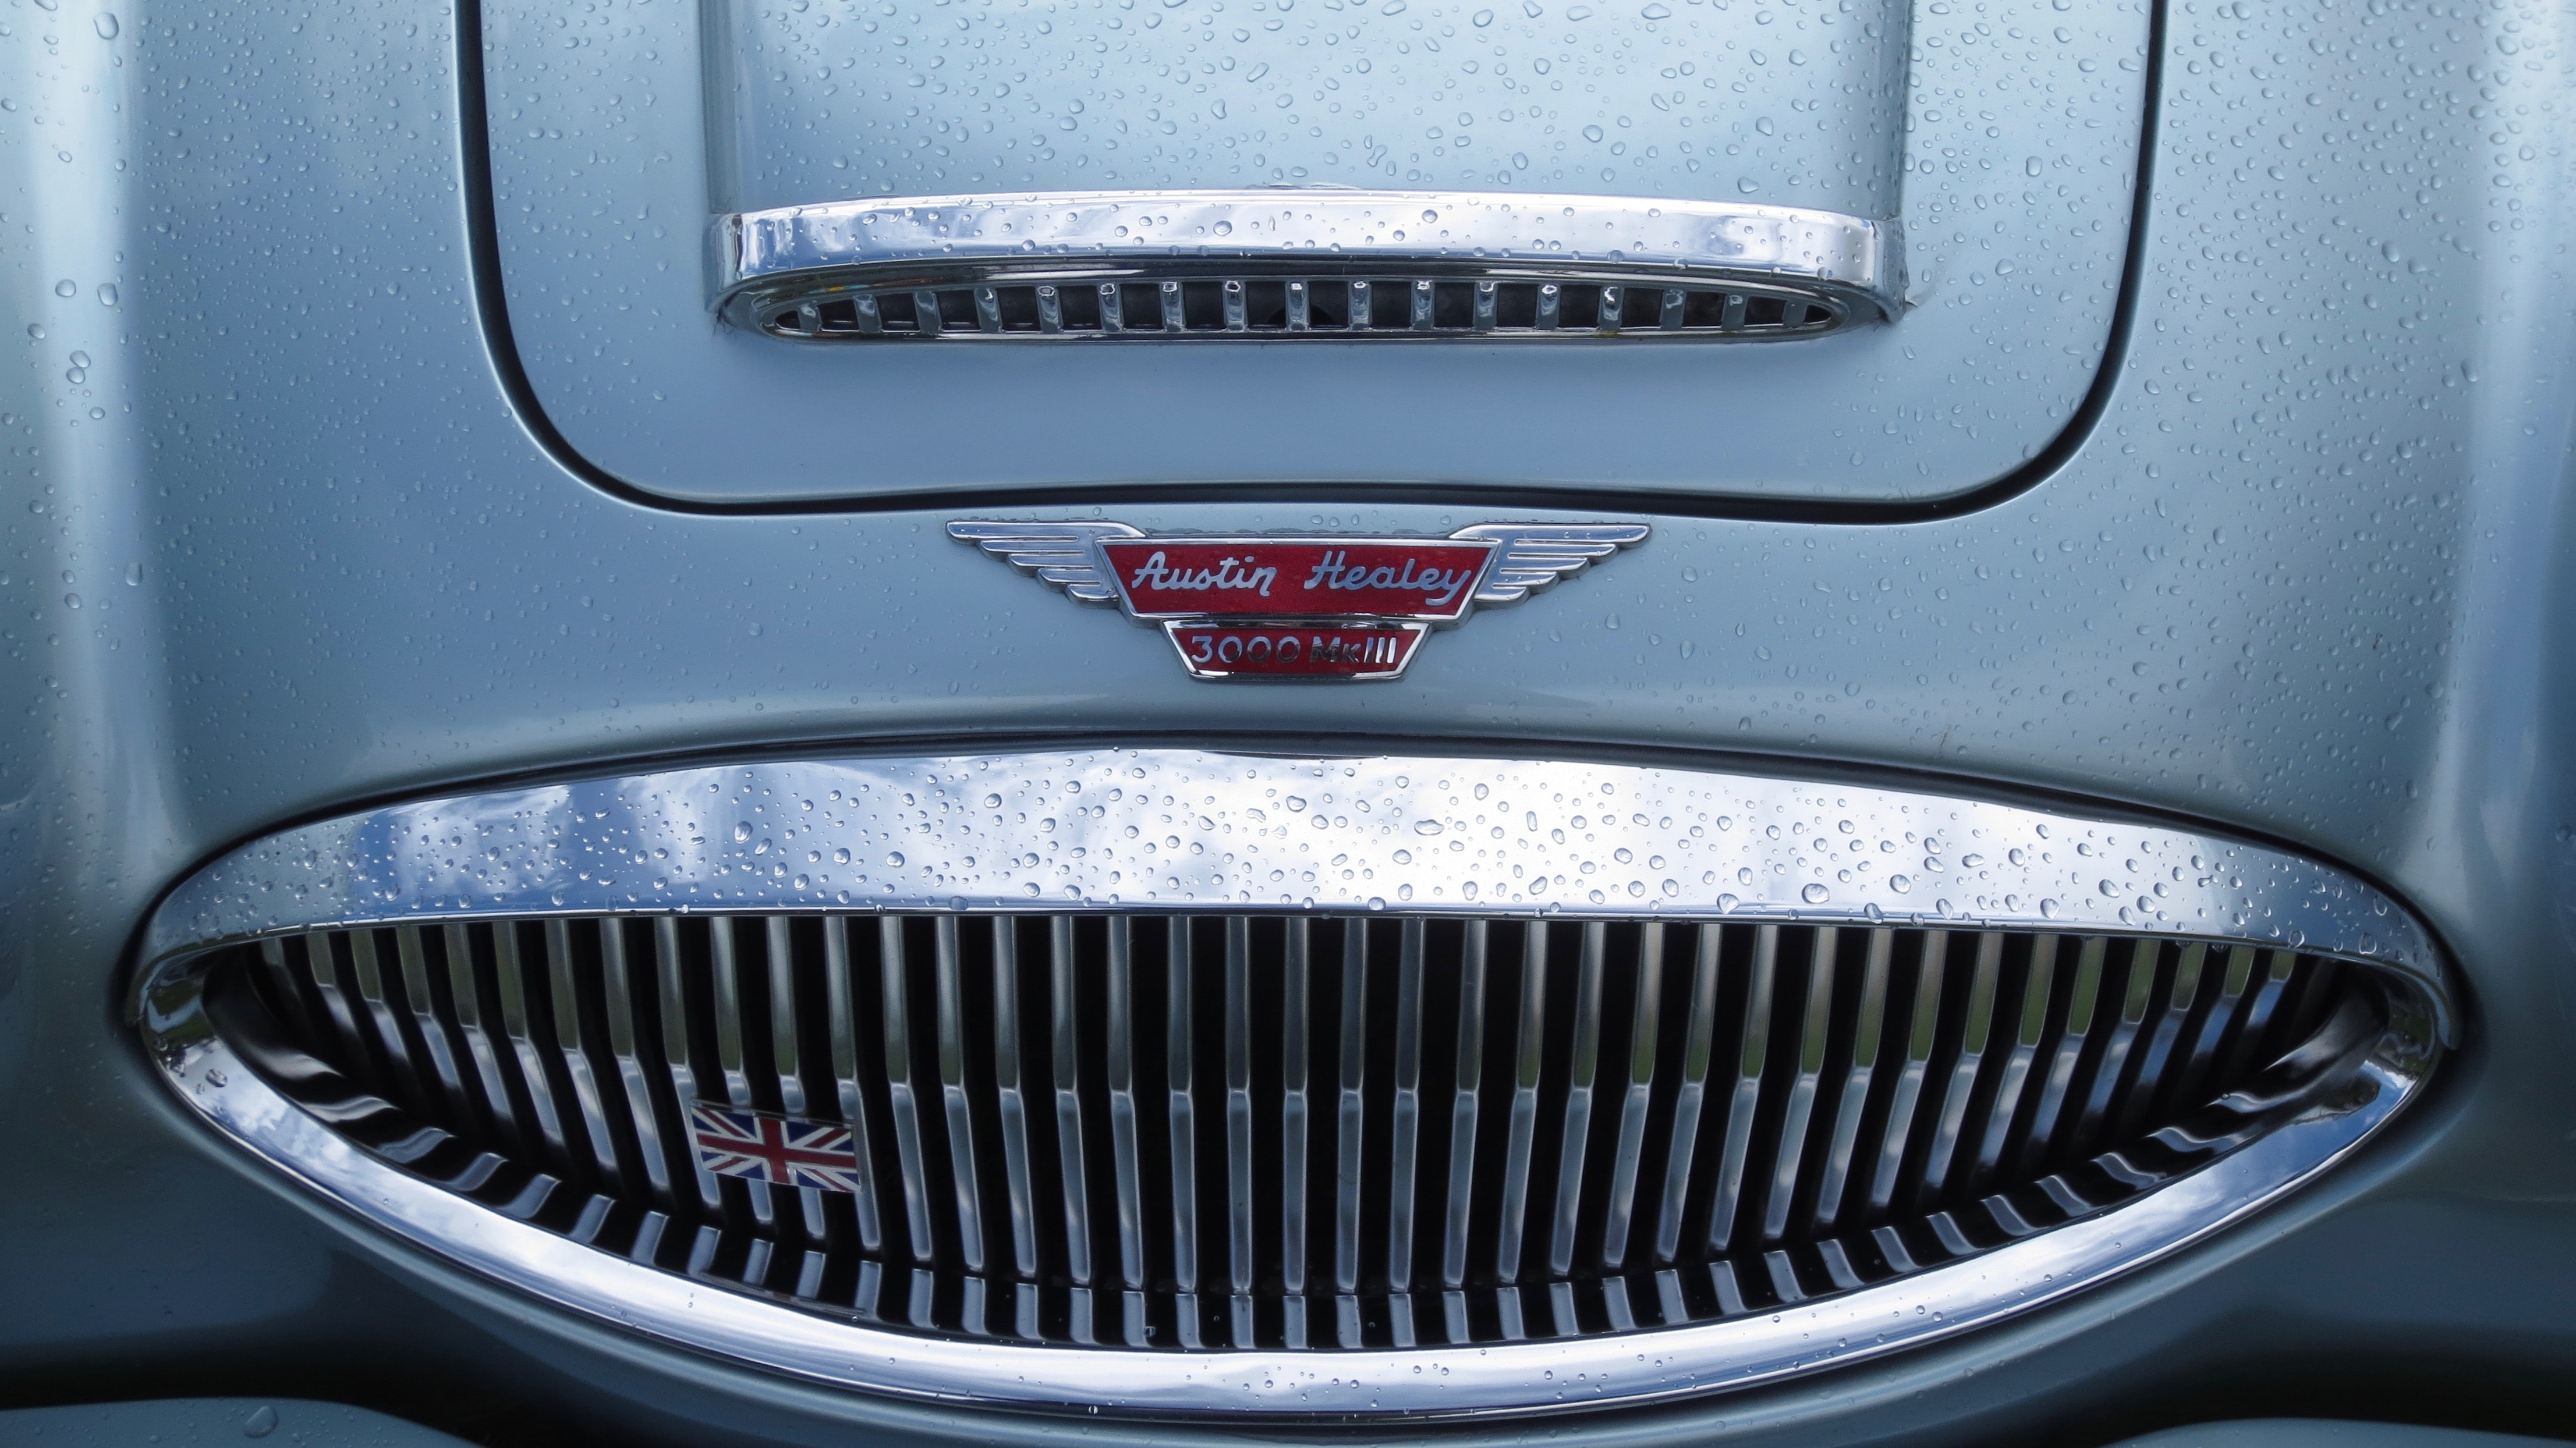 Close-up view of an Austin-Healey chromed front grille